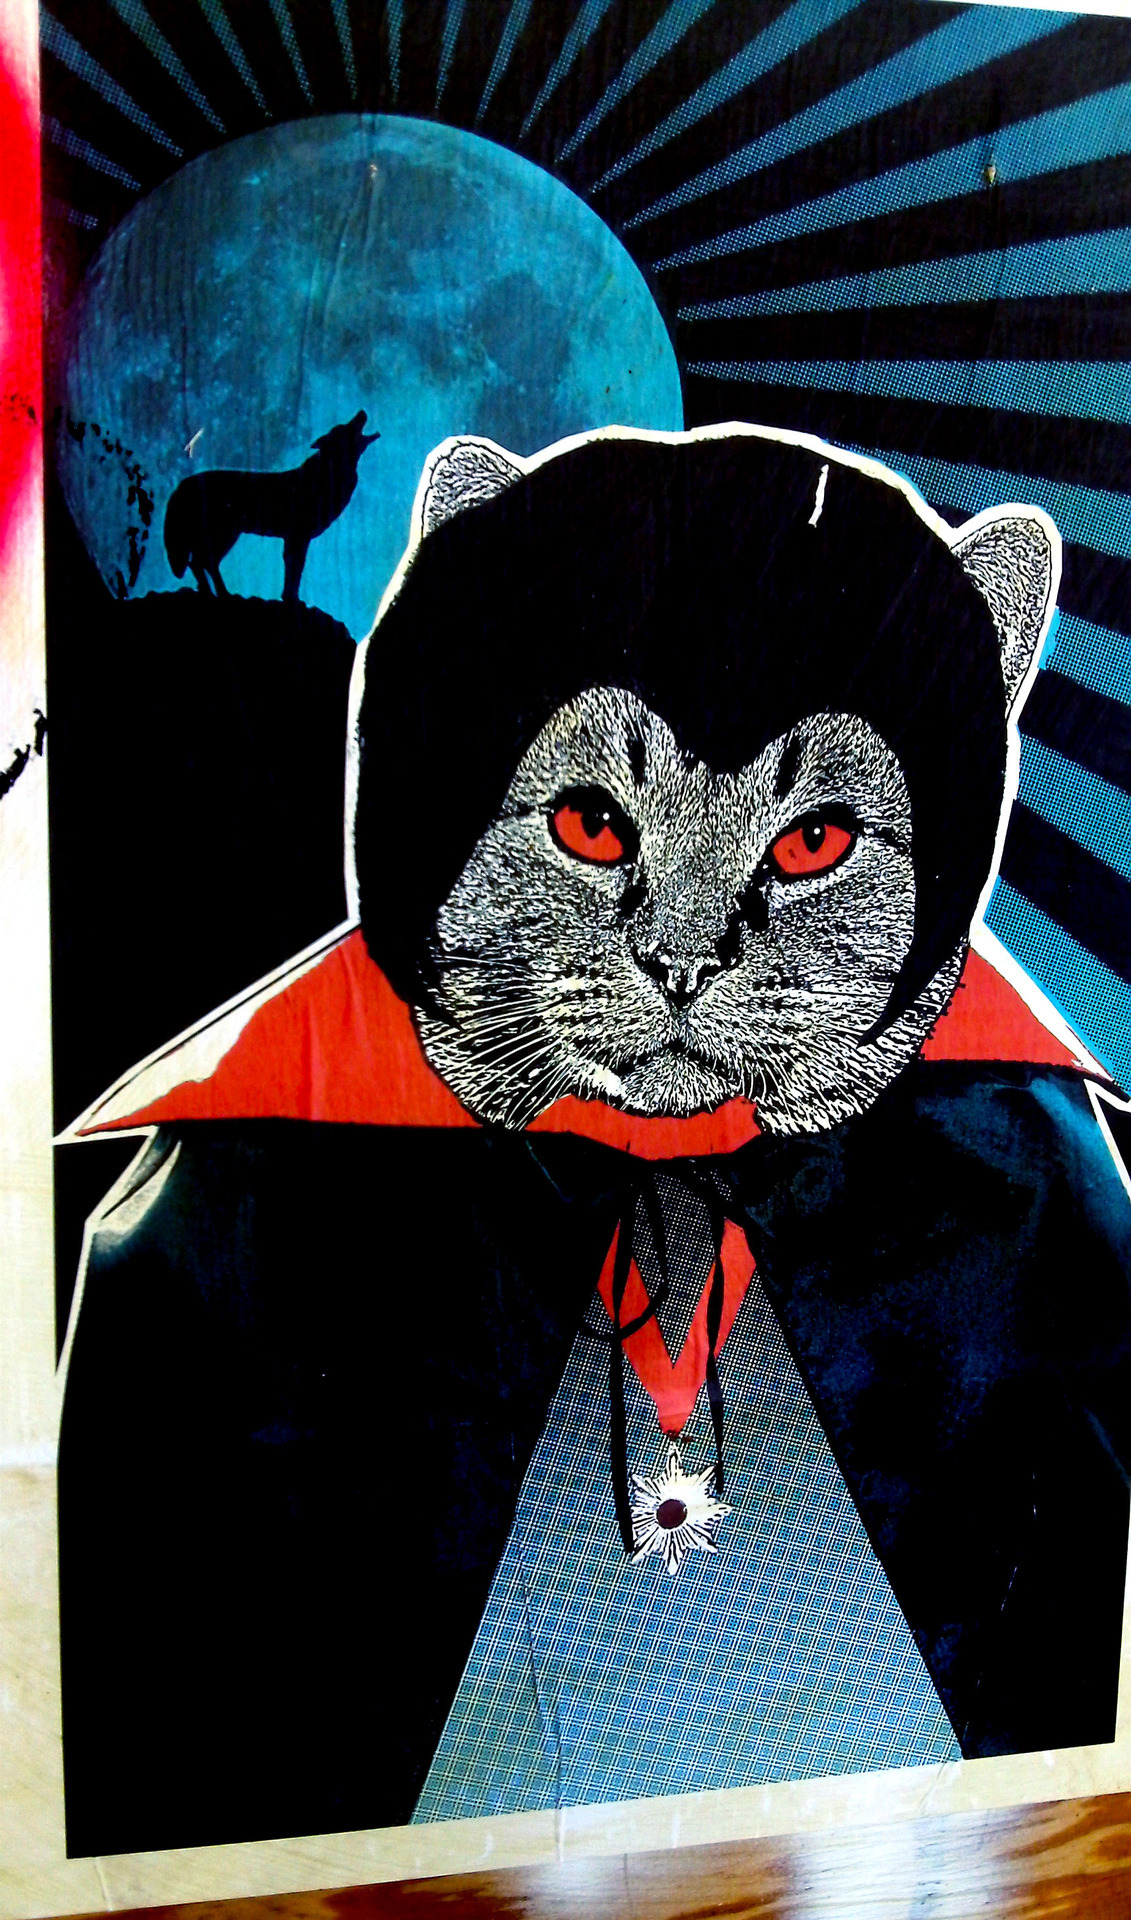 Dracula ca street art in Los Angeles, CA.